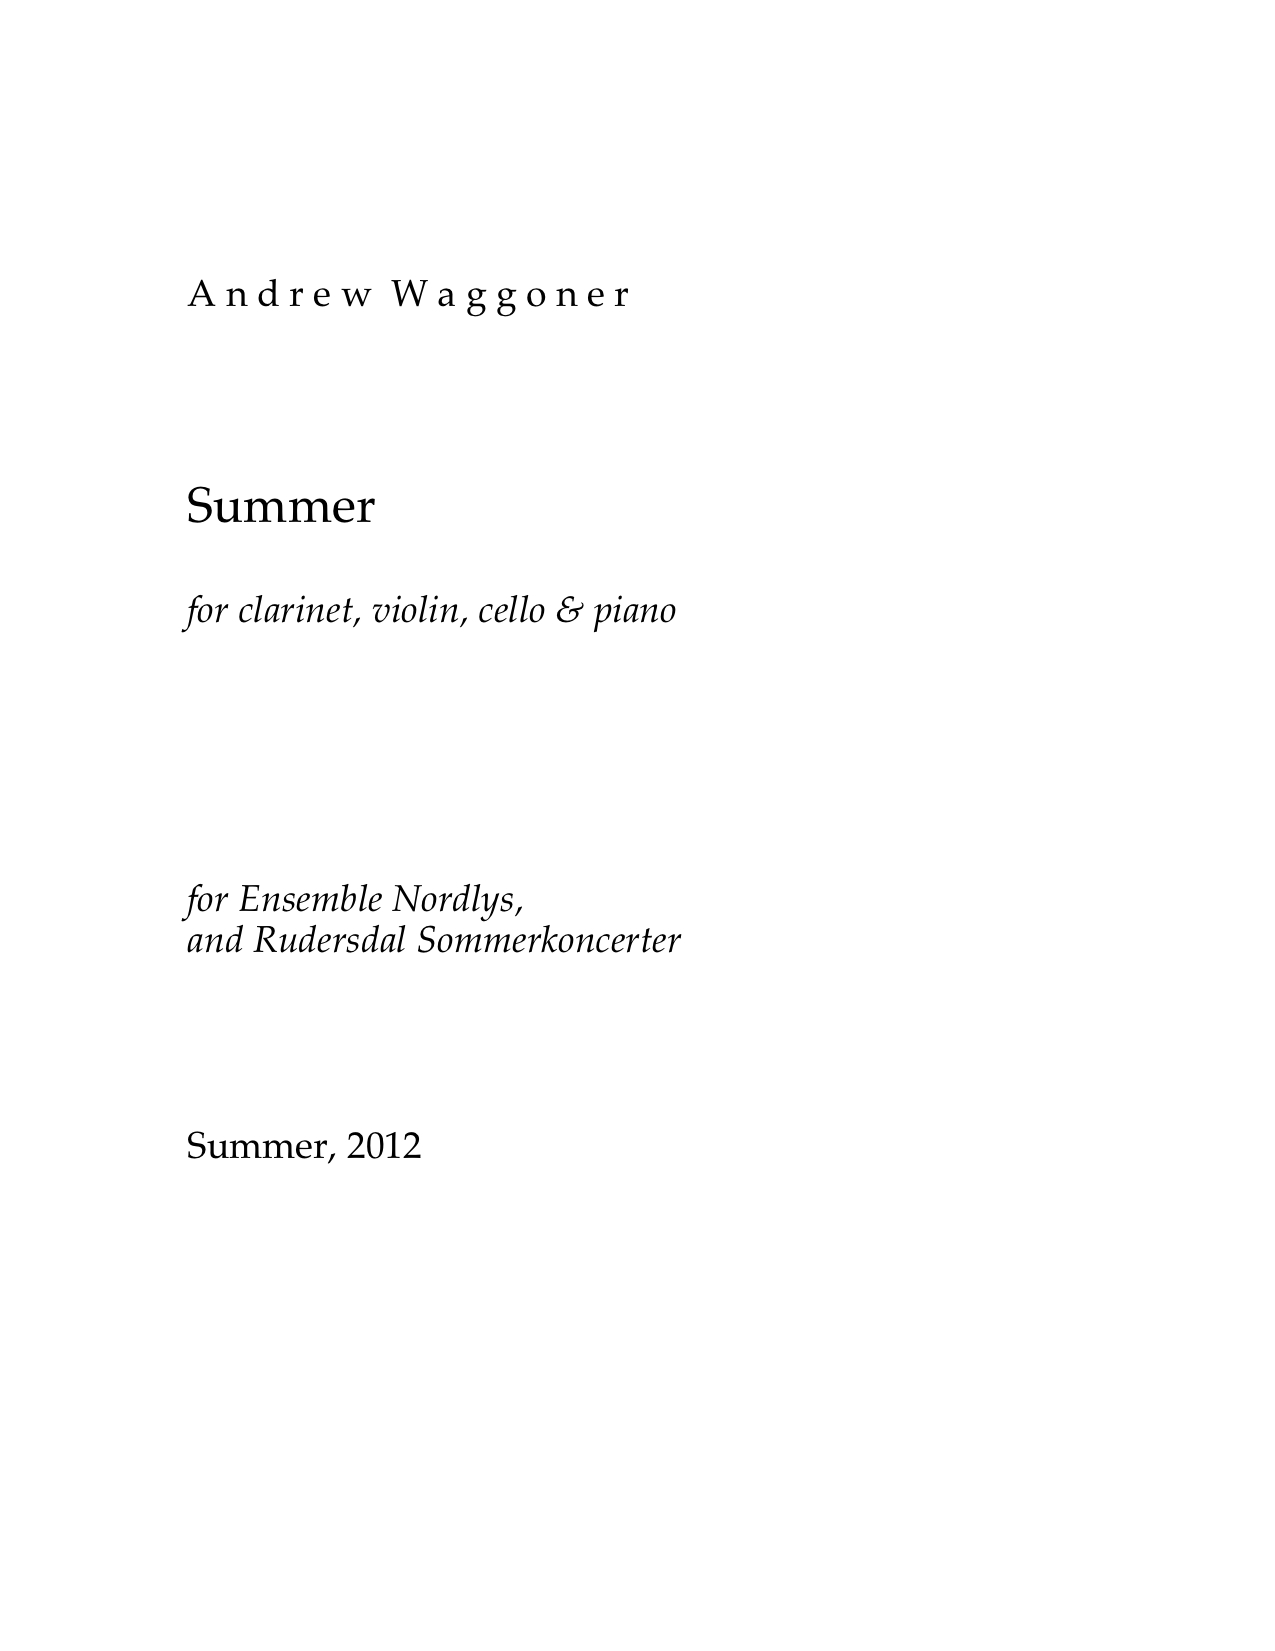 Summer for Clarinet, Violin, Violoncello & Piano